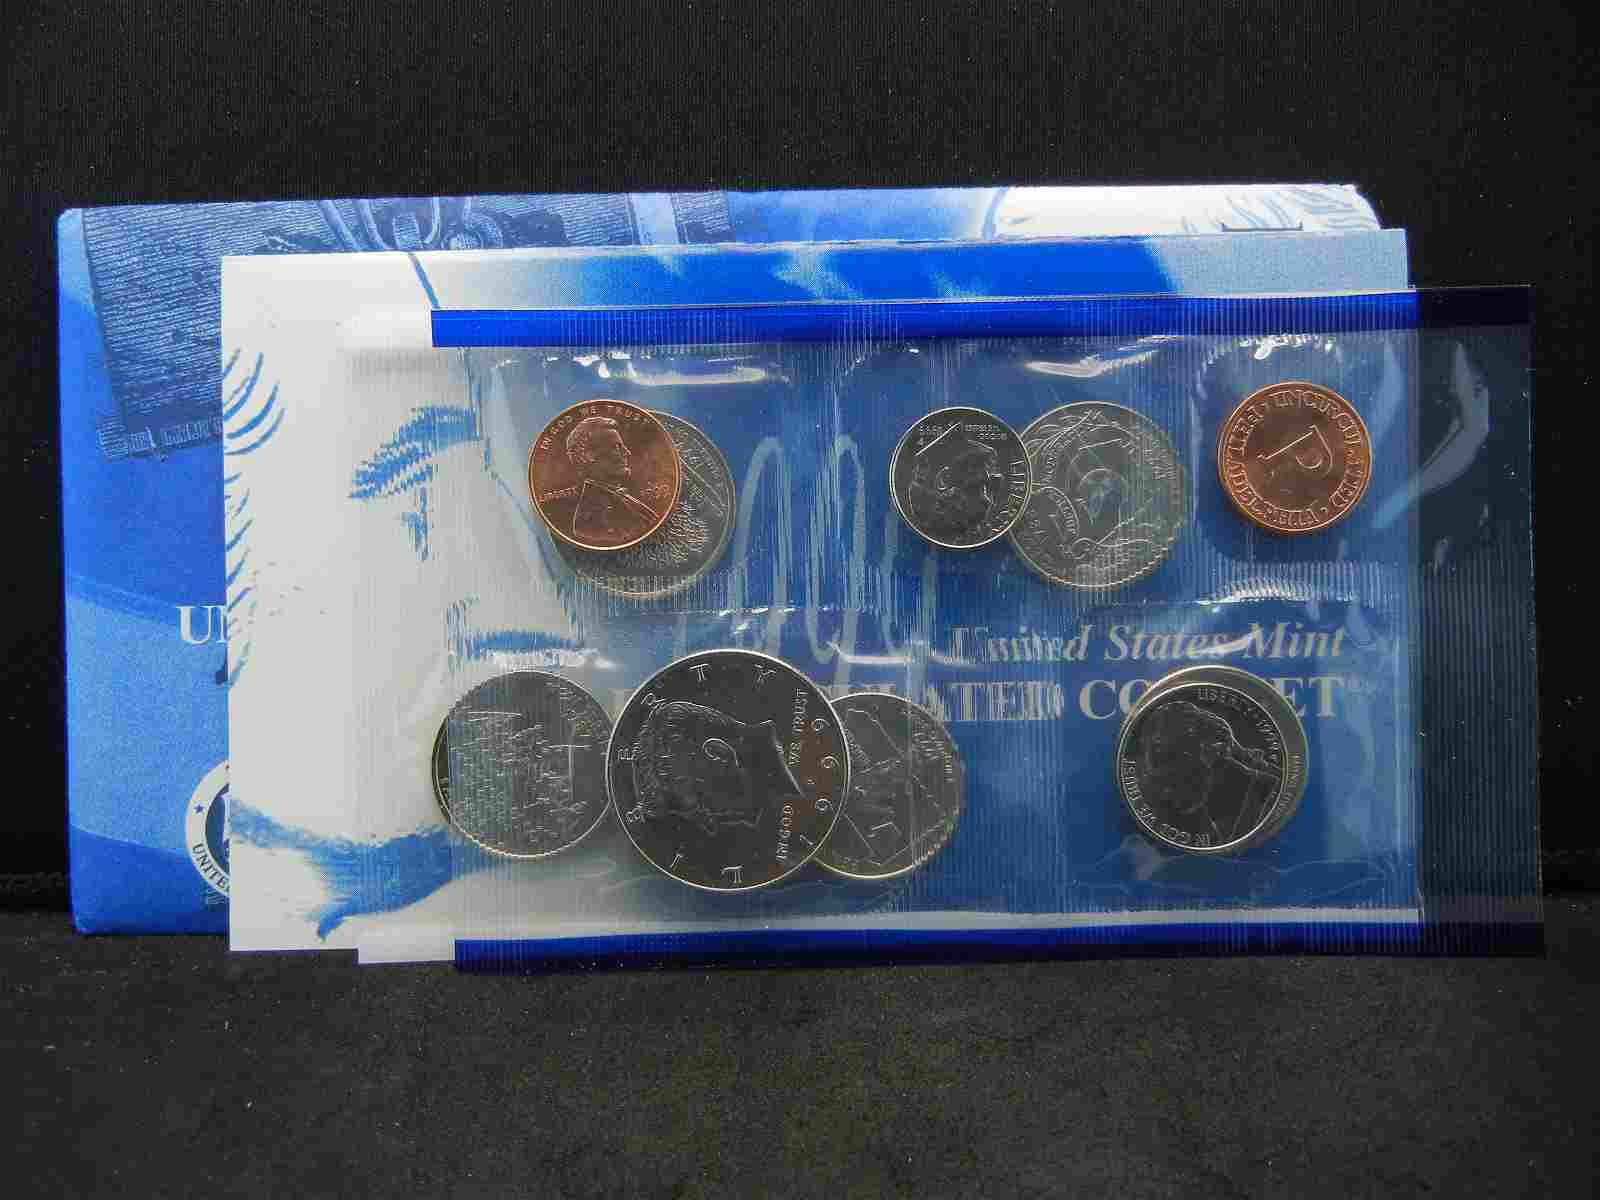 1999 PHILADELPHIA US UNCIRCULATED MINT SET - WITH STATE